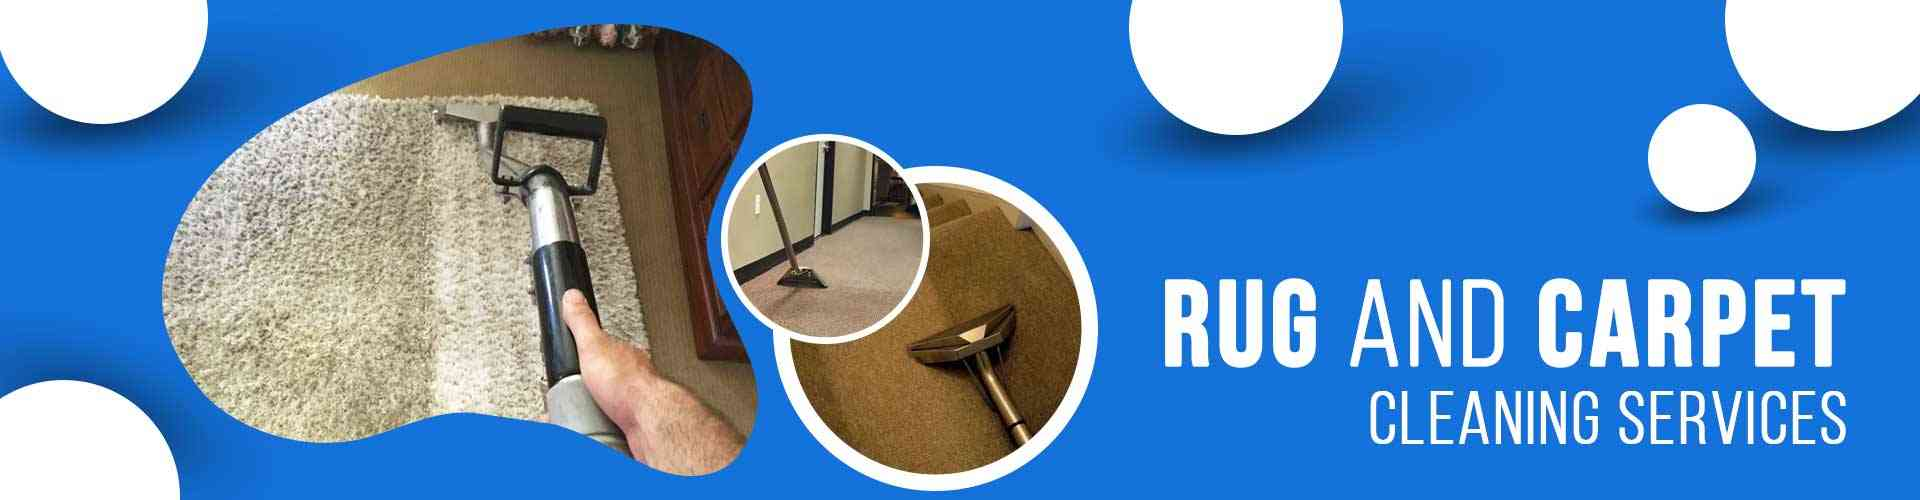 Rug and Carpet Cleaning Services